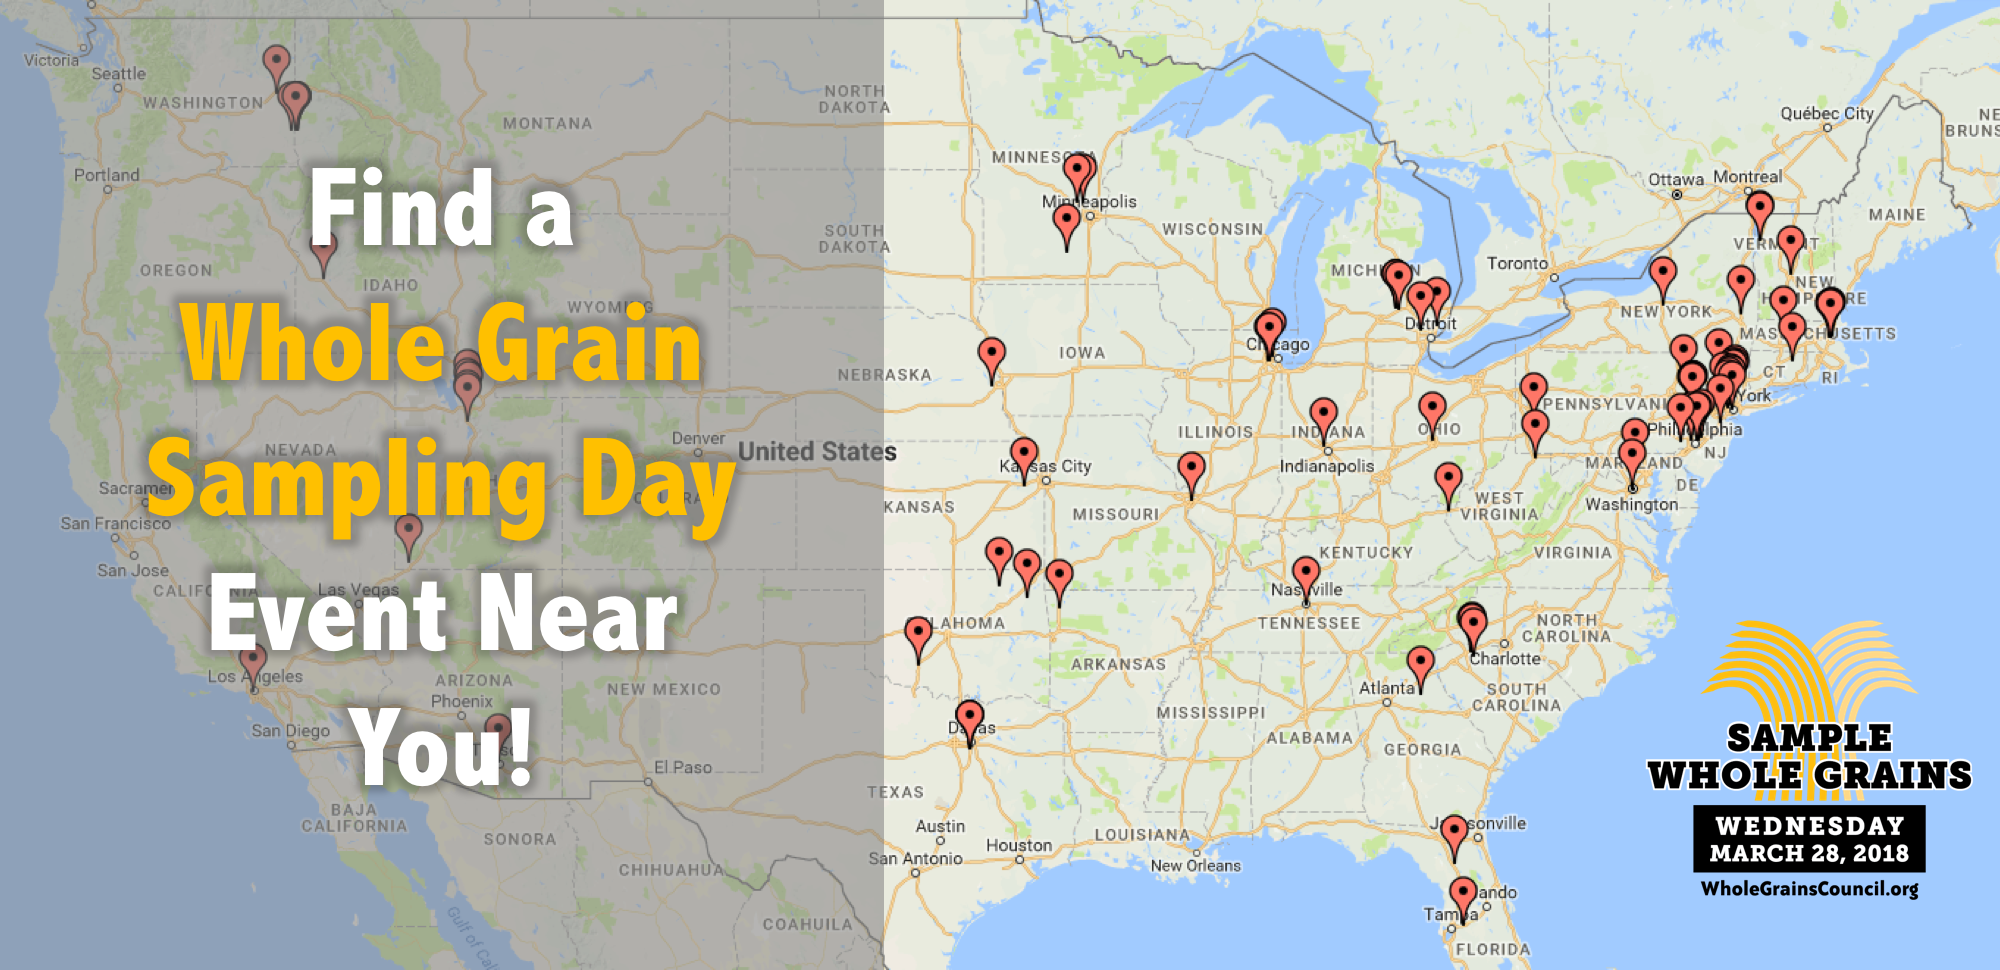 map of Whole Grain Sampling Day events